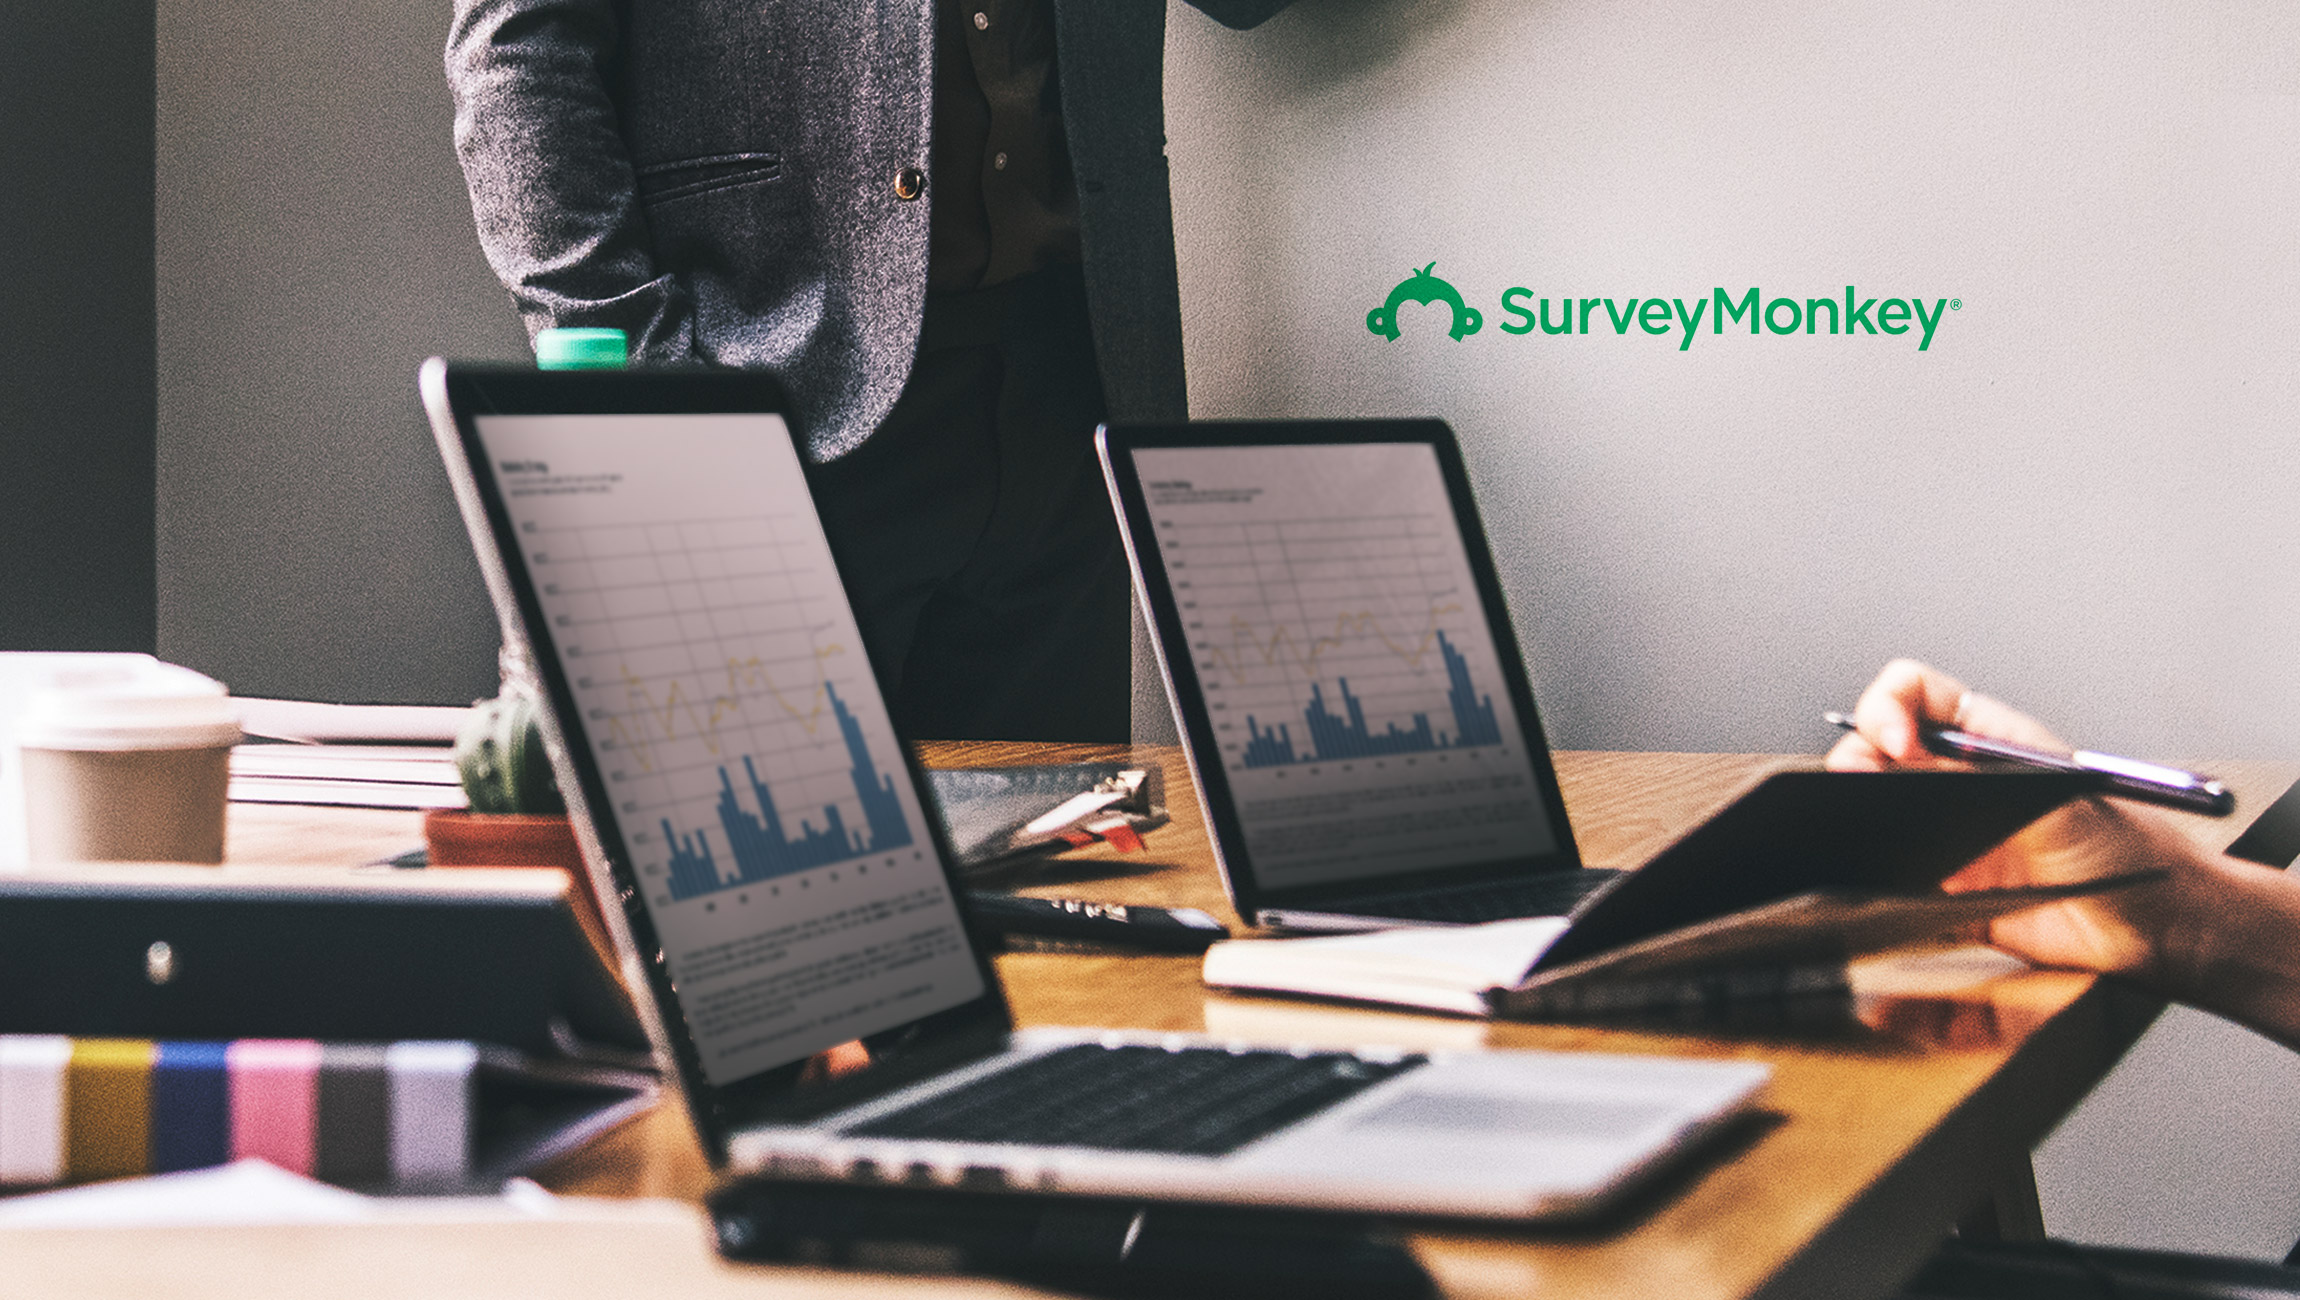 SurveyMonkey Hires Autodesk Executive Debbie Clifford as Its New Chief Financial Officer